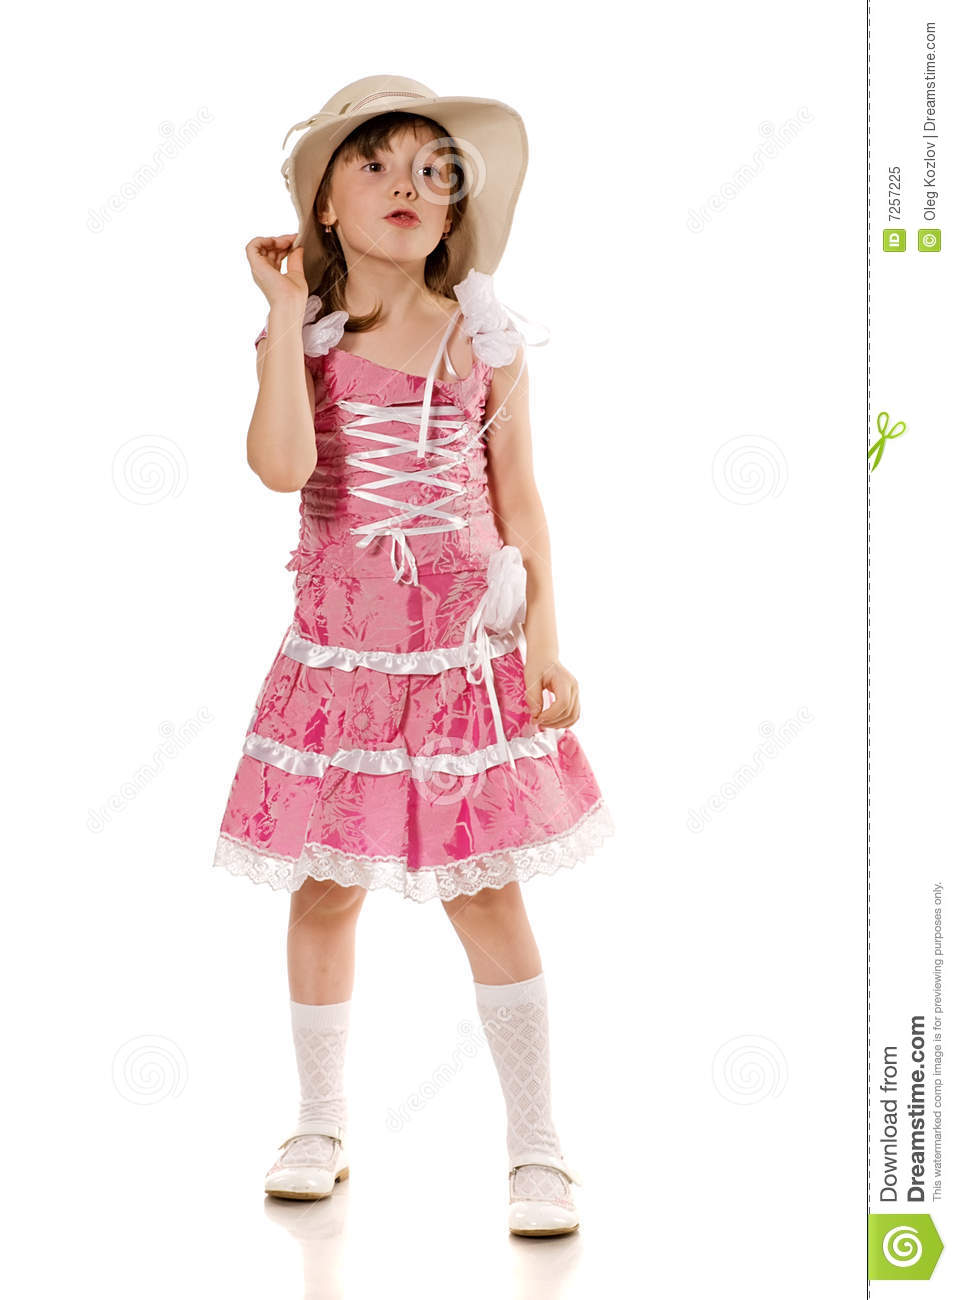 Little girl in pink dress and hat